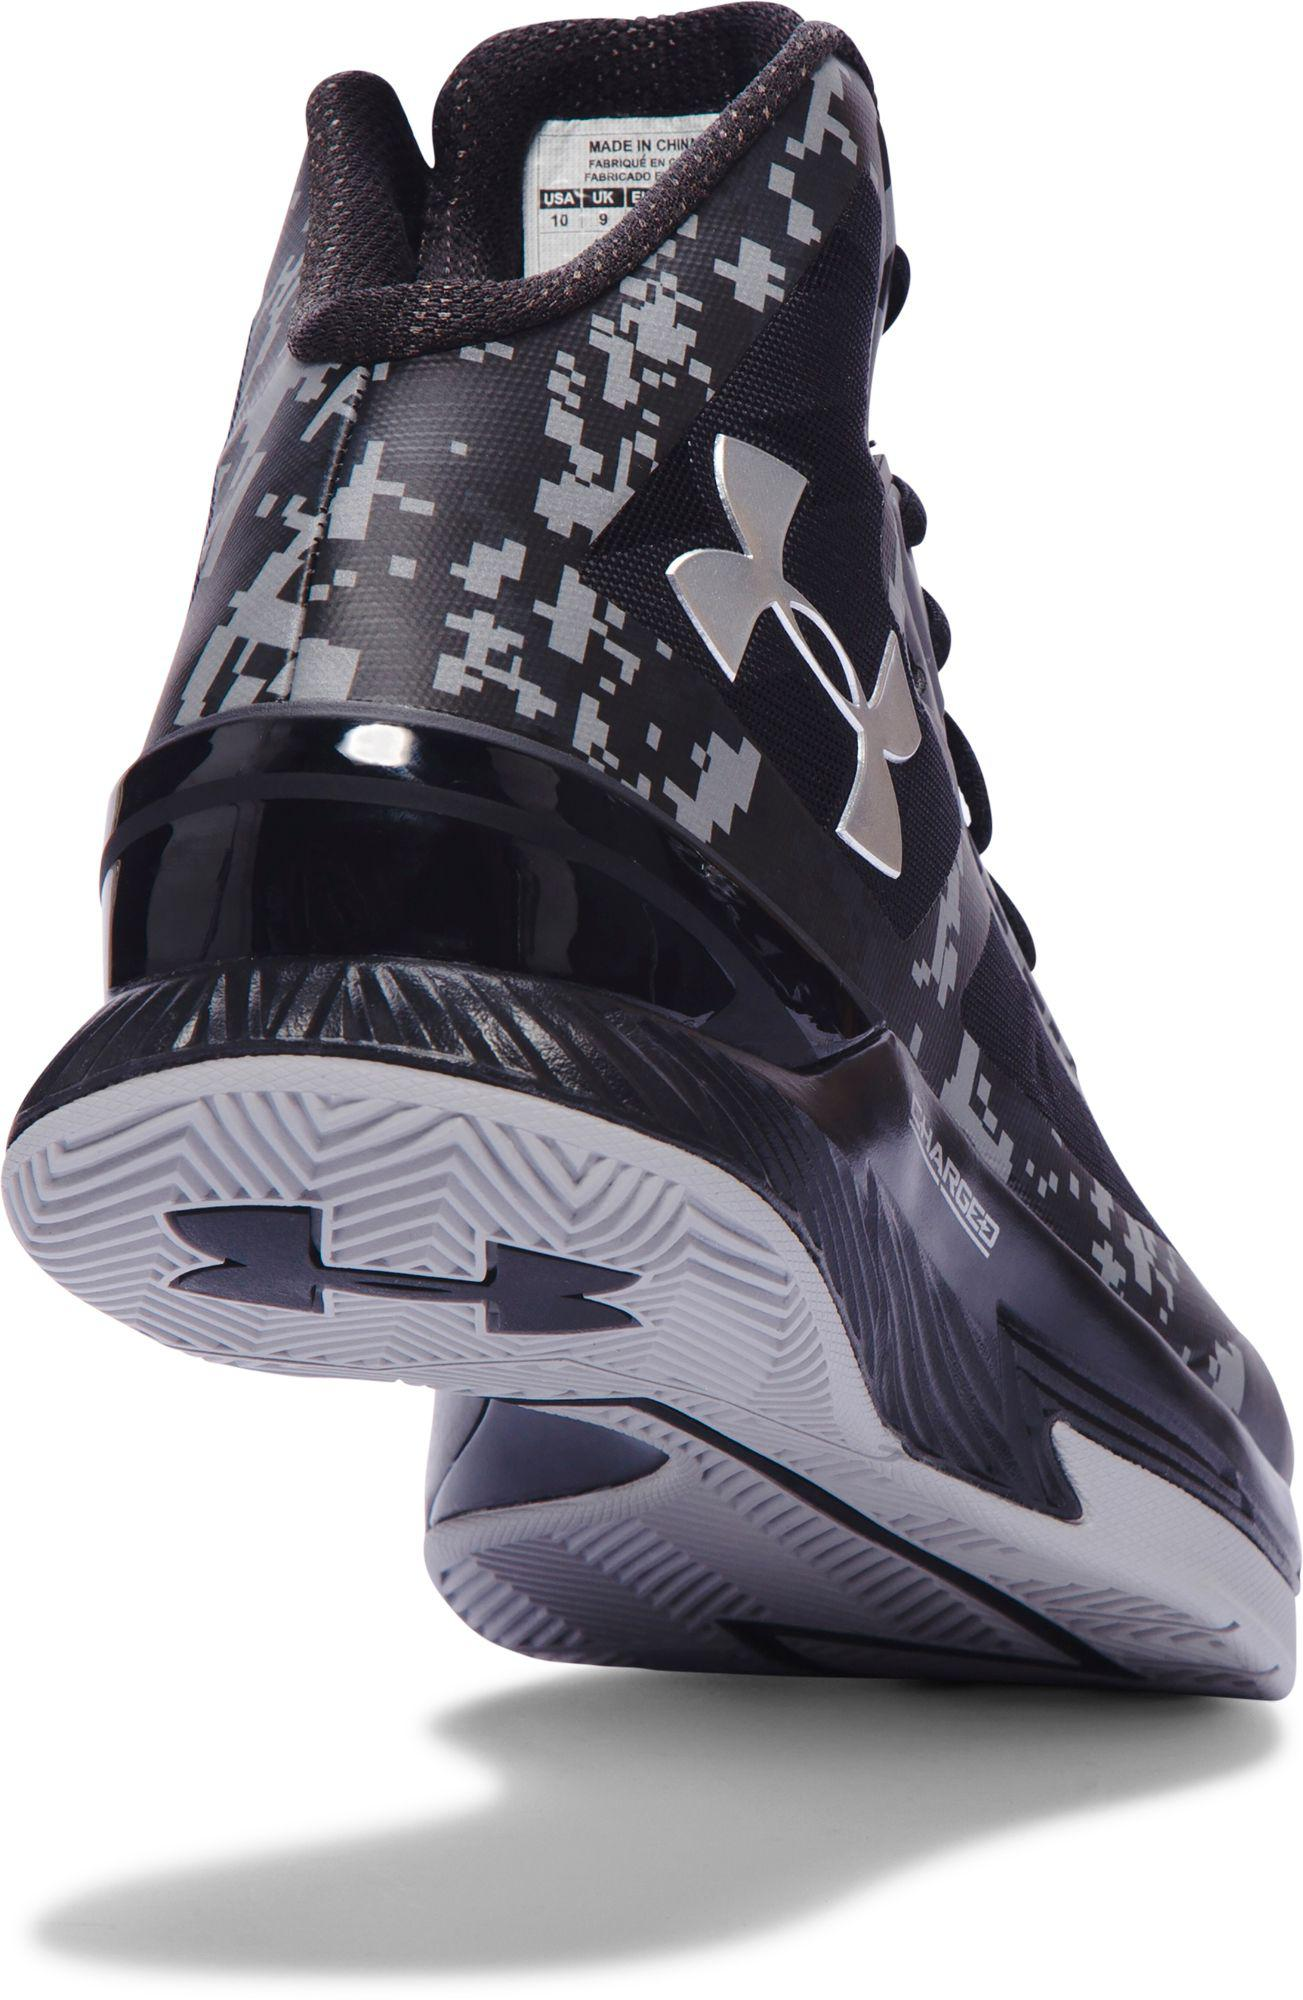 4f84e5dc8 Under Armour - Black Clutchfit Lightning Basketball Shoes for Men - Lyst